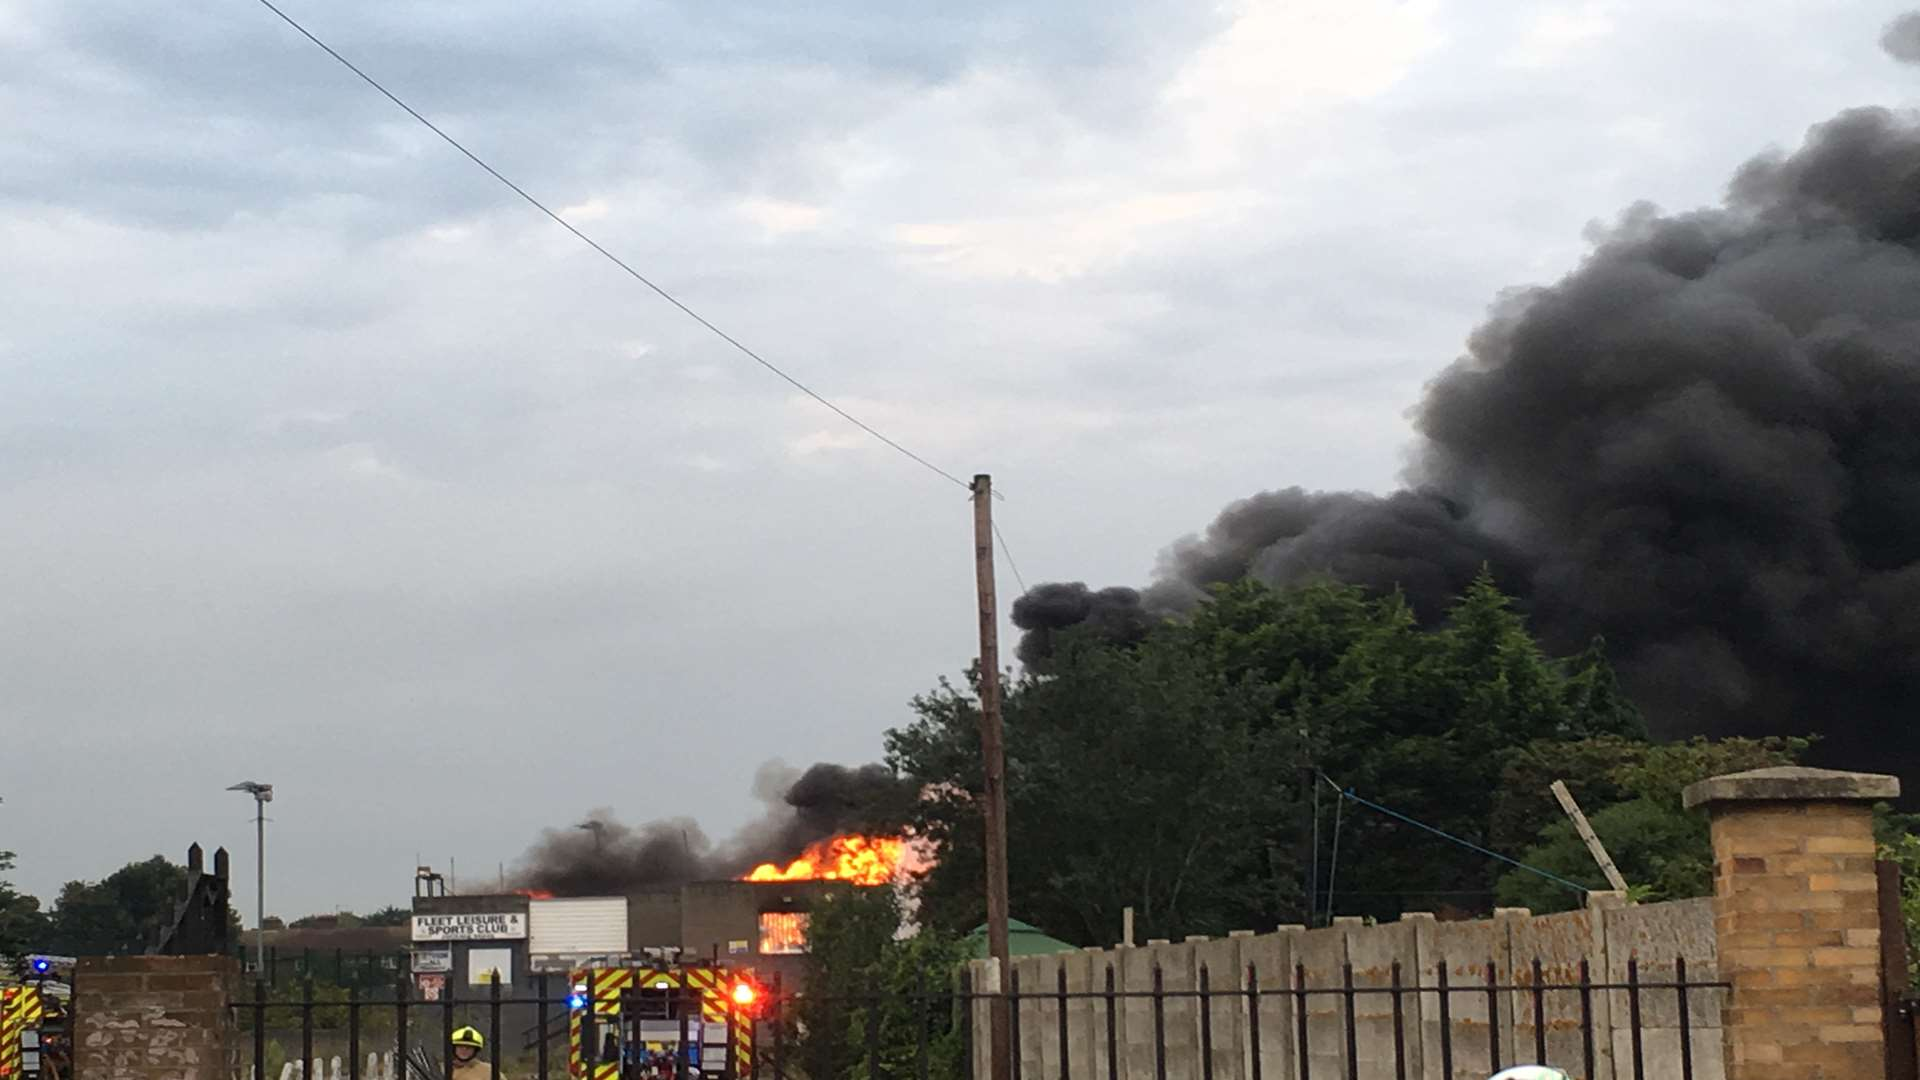 Firefighters tackled the blaze from several angles. Picture: Lucy Hickmott